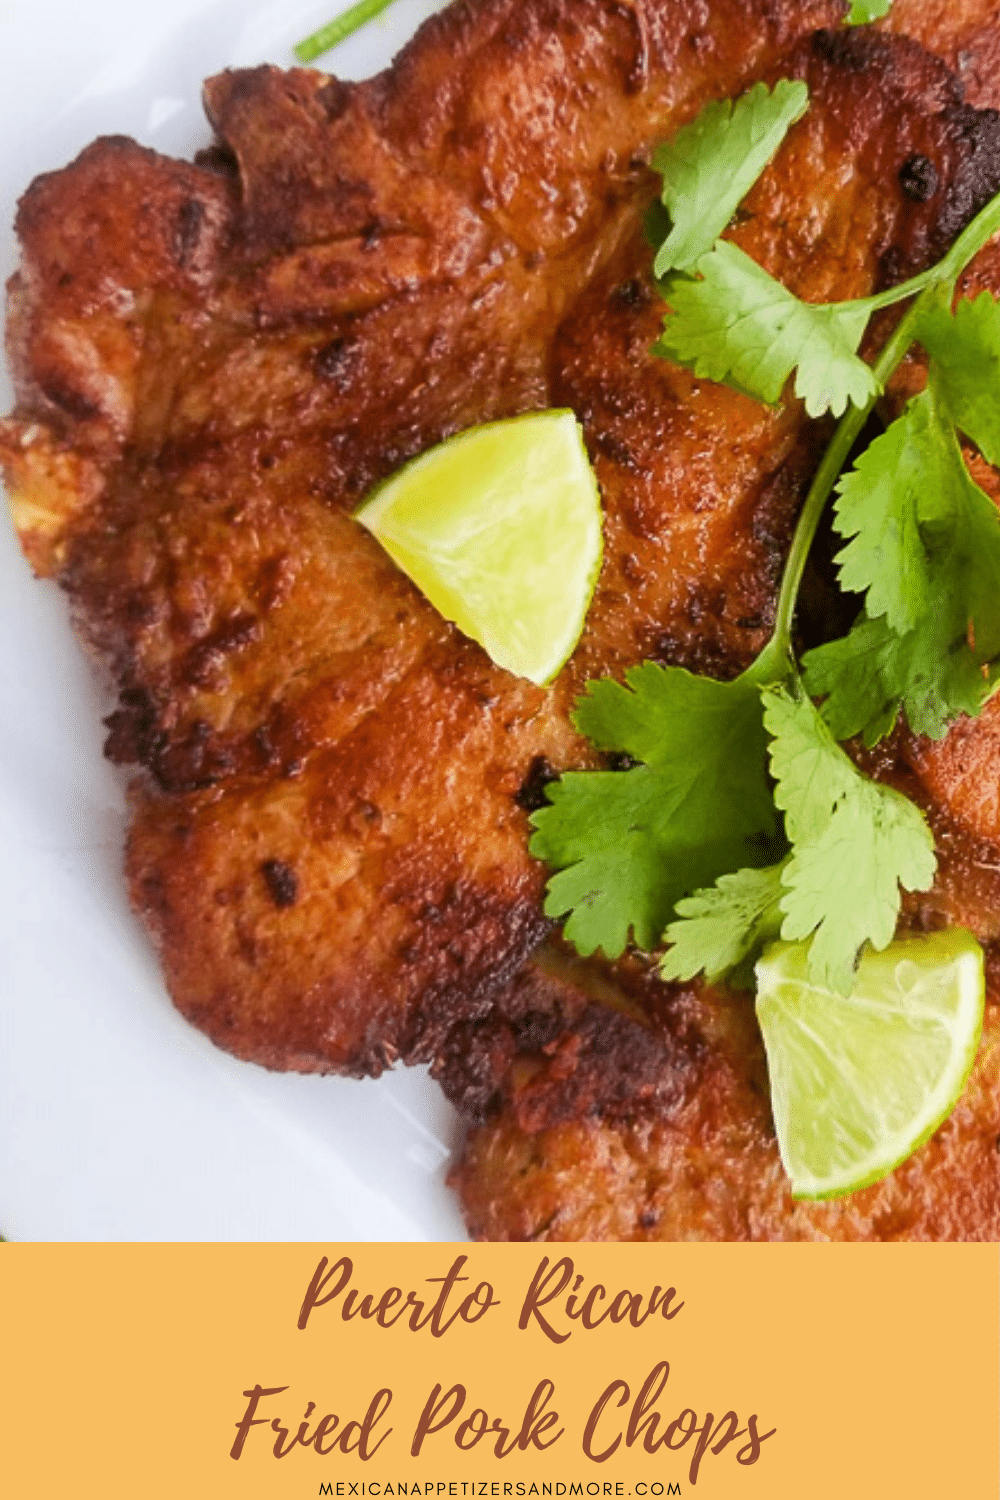 Puerto Rican Fried Pork Chops